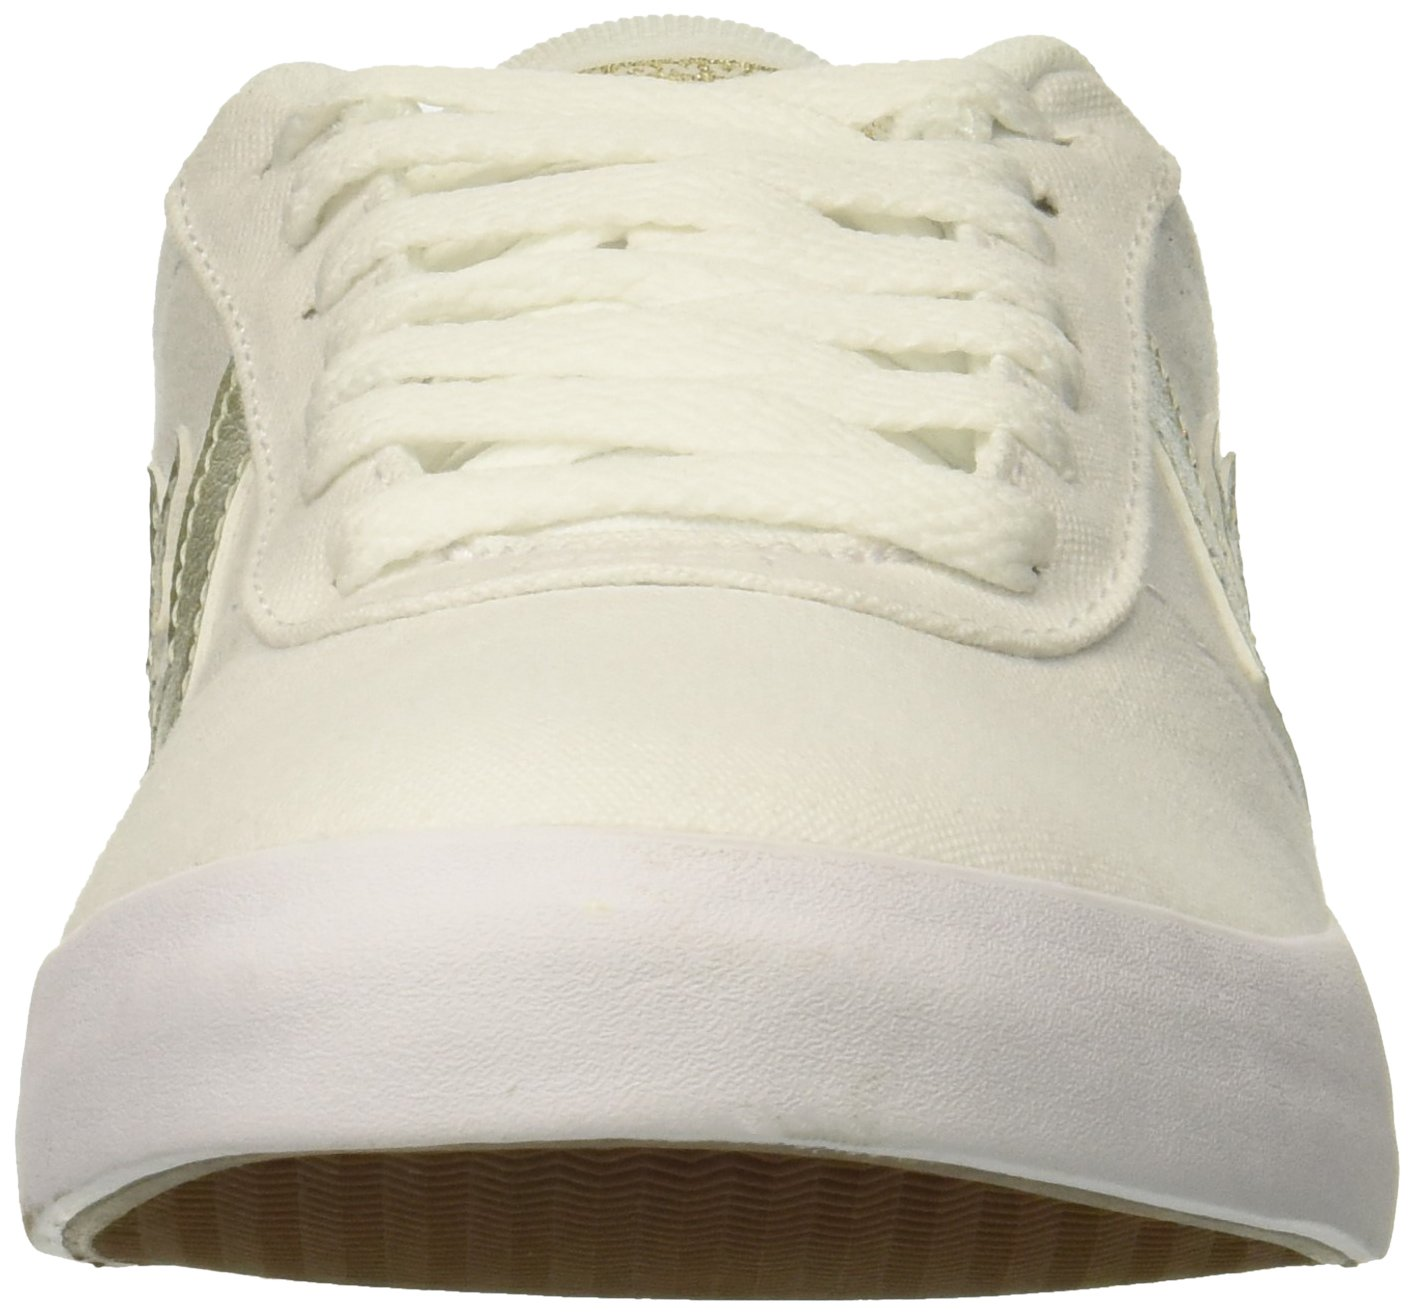 Converse Women's Sneaker Point Star Low Top Sneaker Women's B07CR9J6XJ 10 B(M) US|White/White/Gold 111394